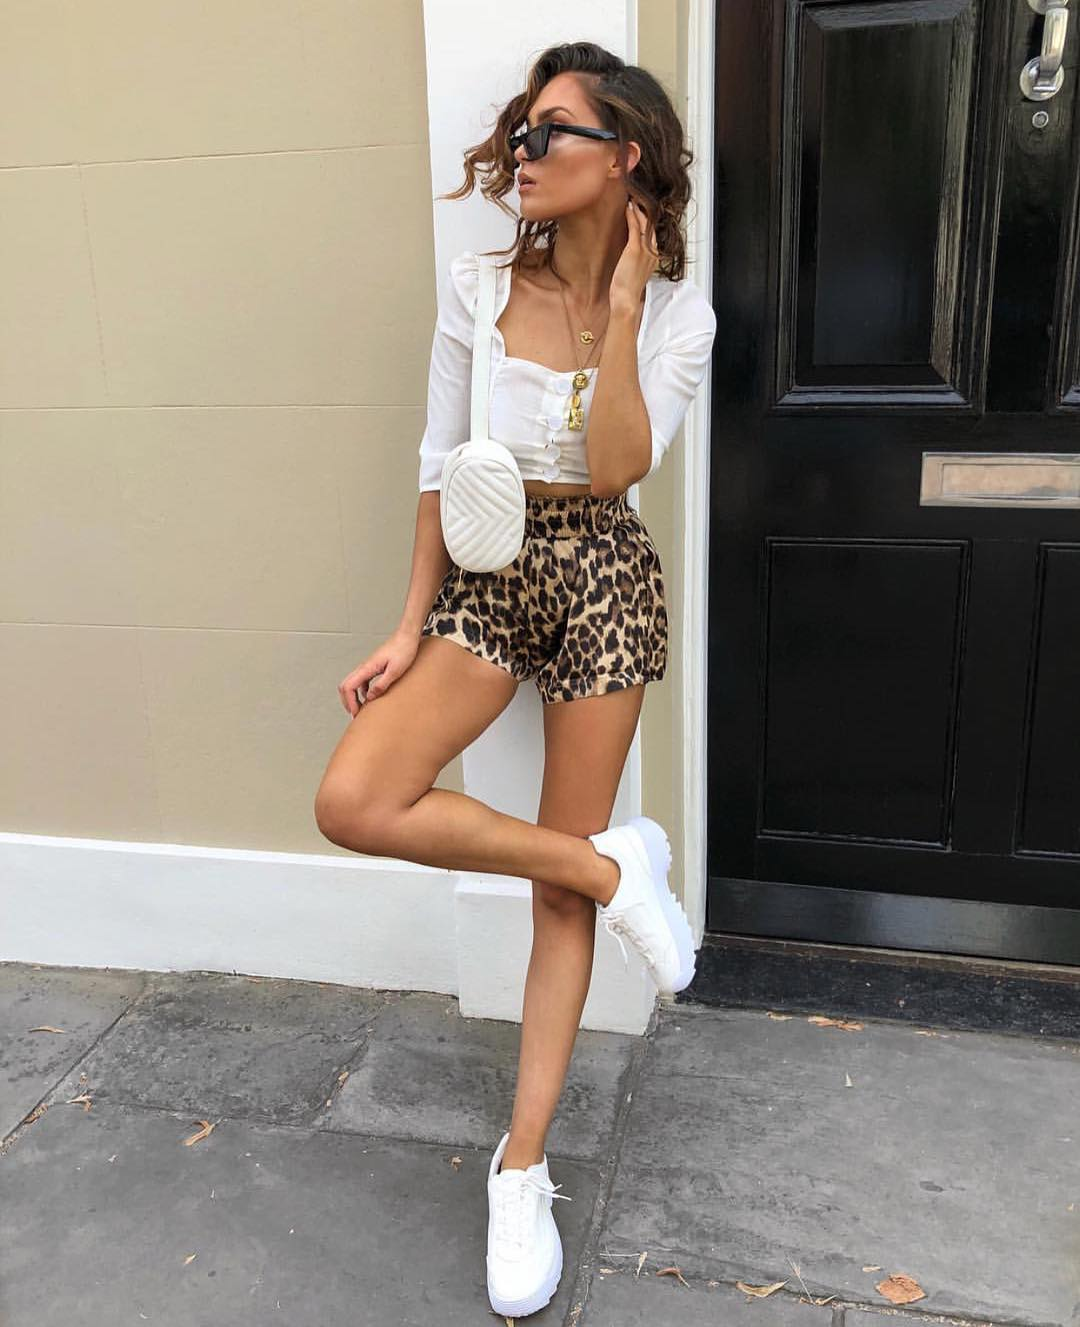 Summer Street Look: White Crop Blouse, Leopard Shorts And White Kicks 2021